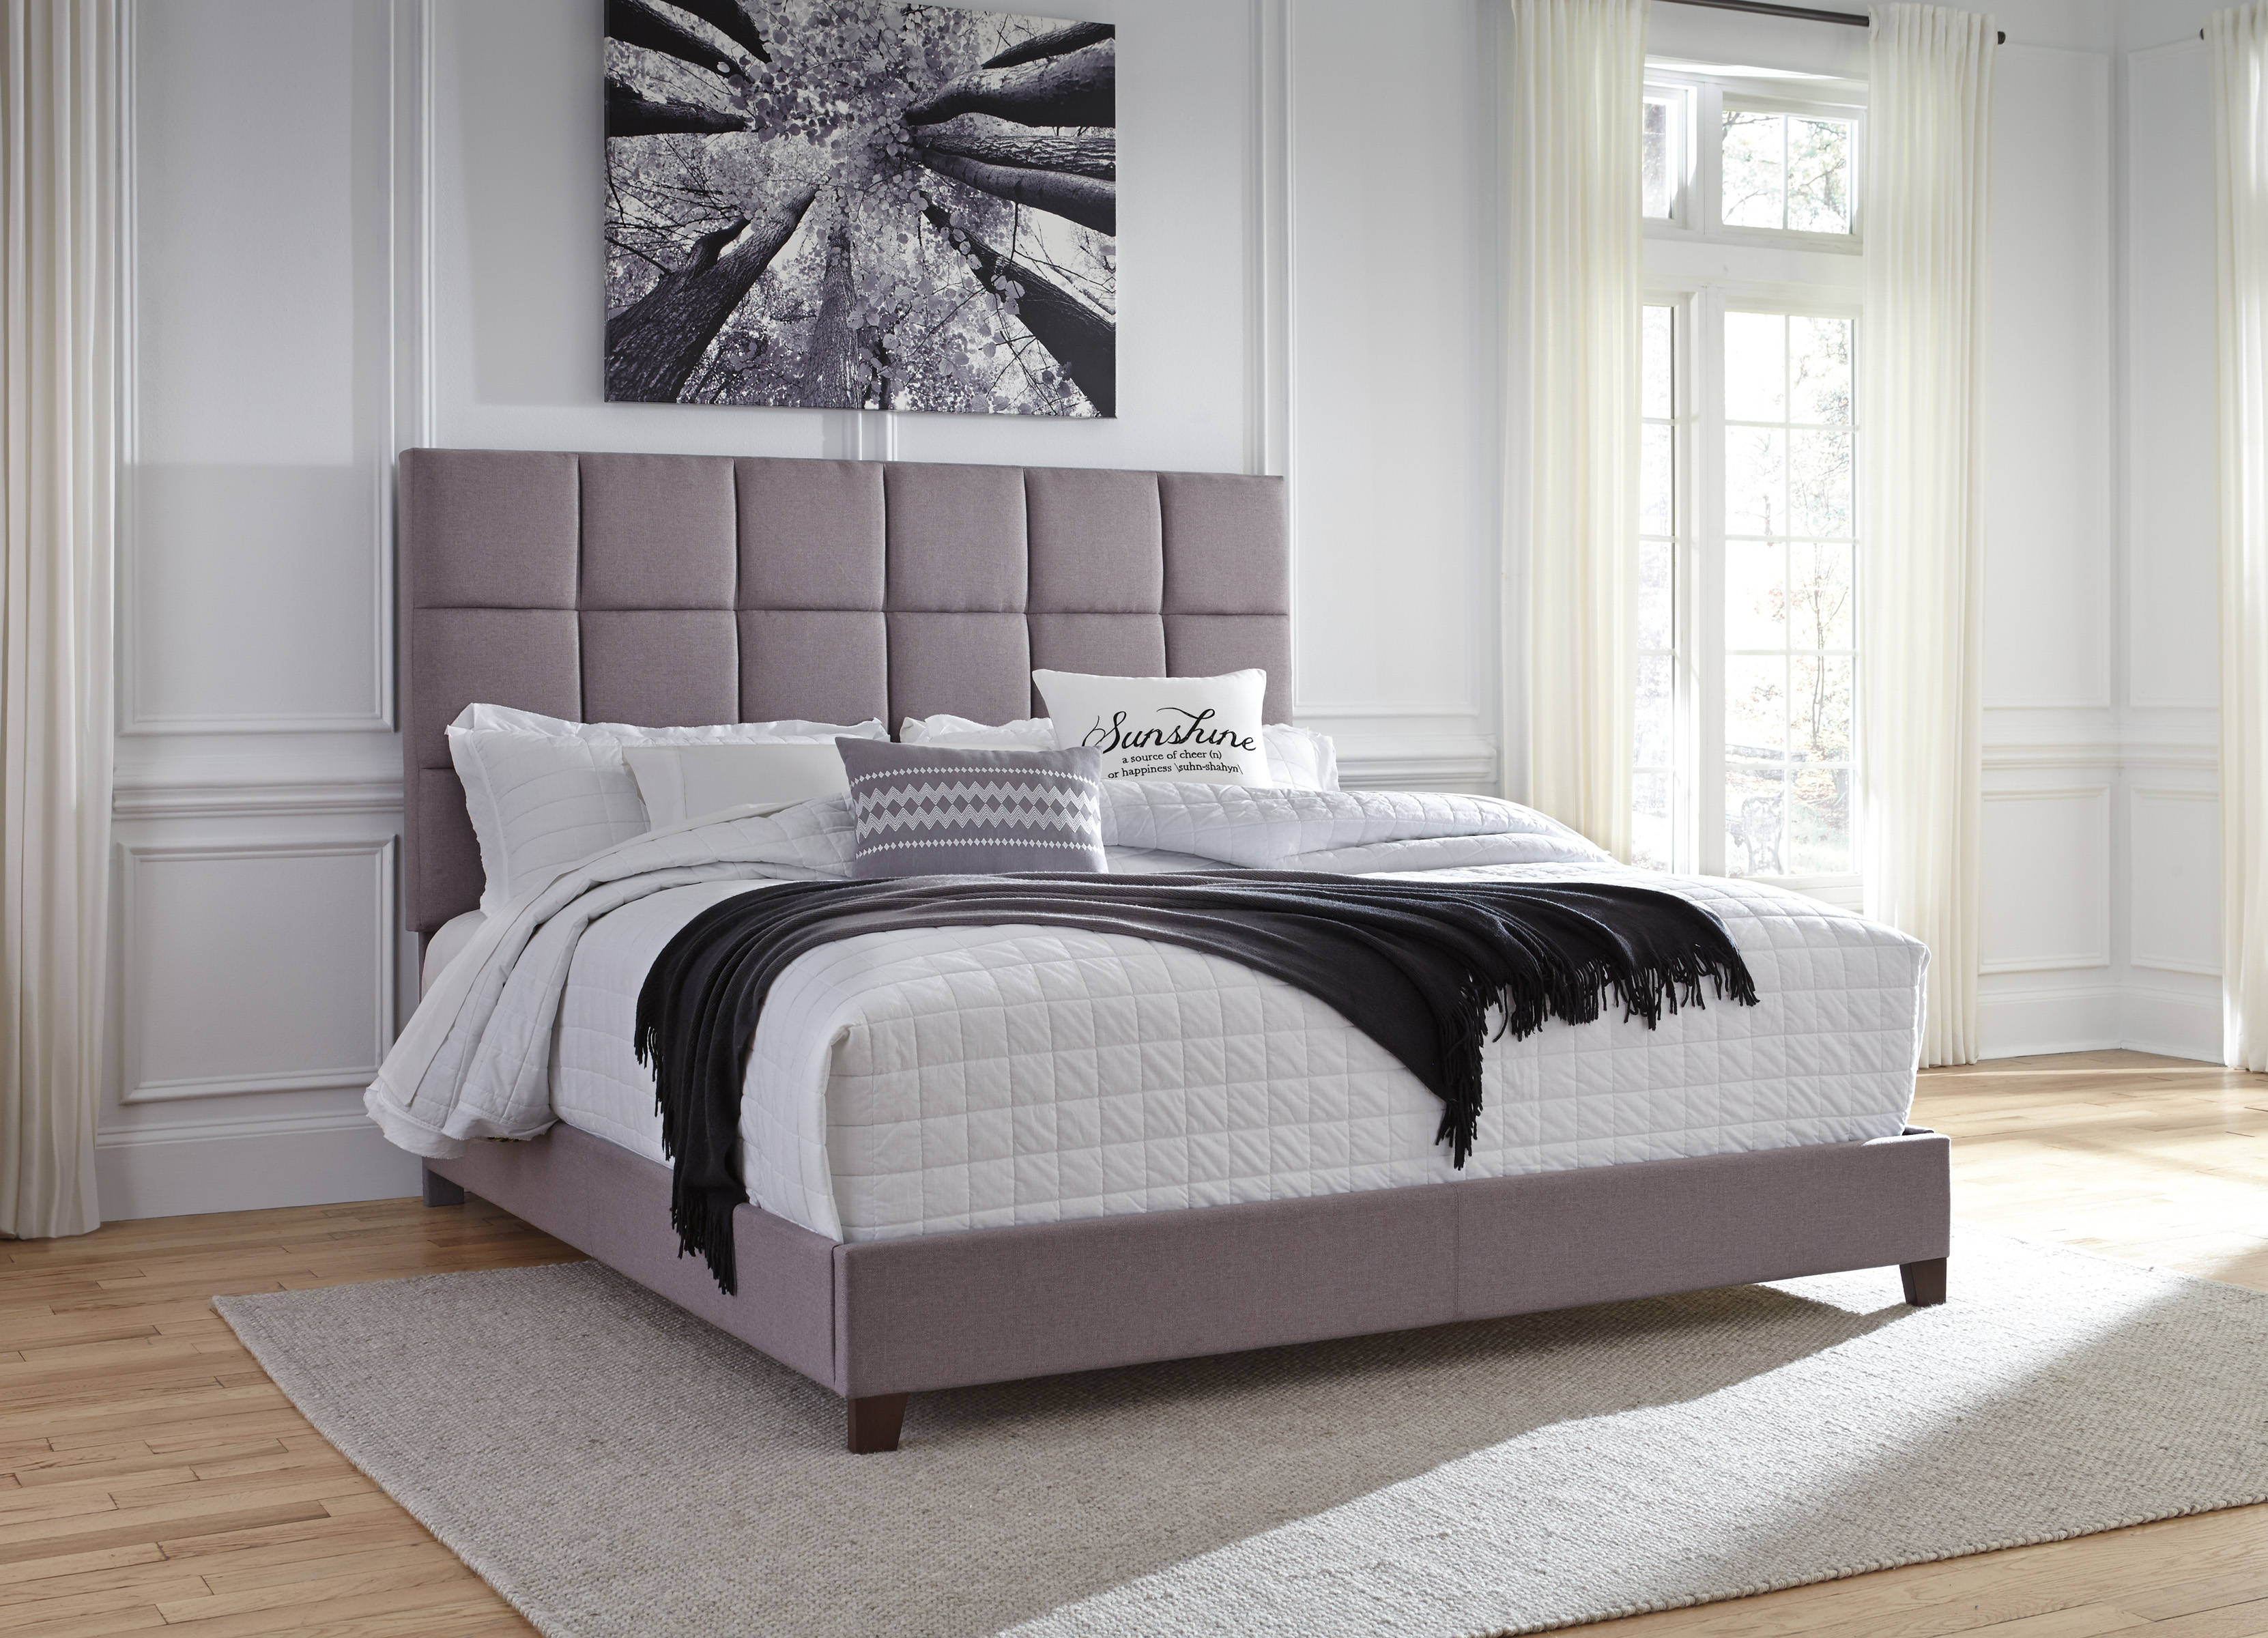 Ashley furniture contemporary gray king upholstered bed - Ashley furniture bedroom sets discontinued ...